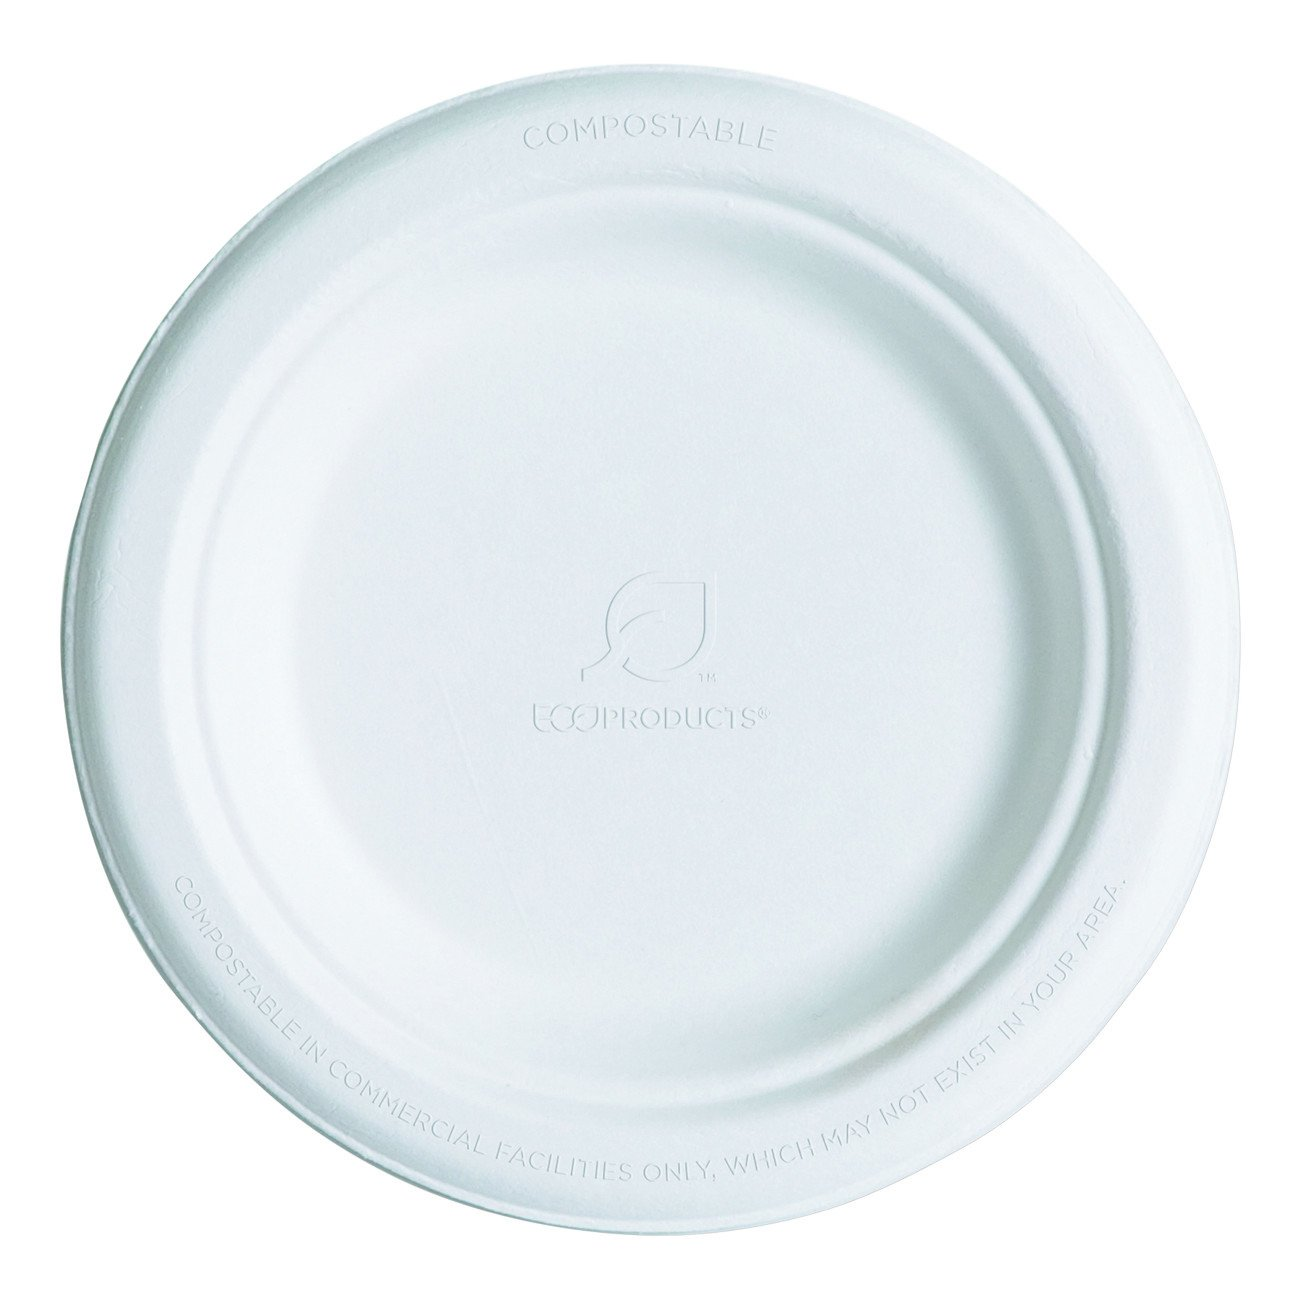 Eco-Products Sugarcane Plate 154mm 1000pcs Available throughout EU /& UK